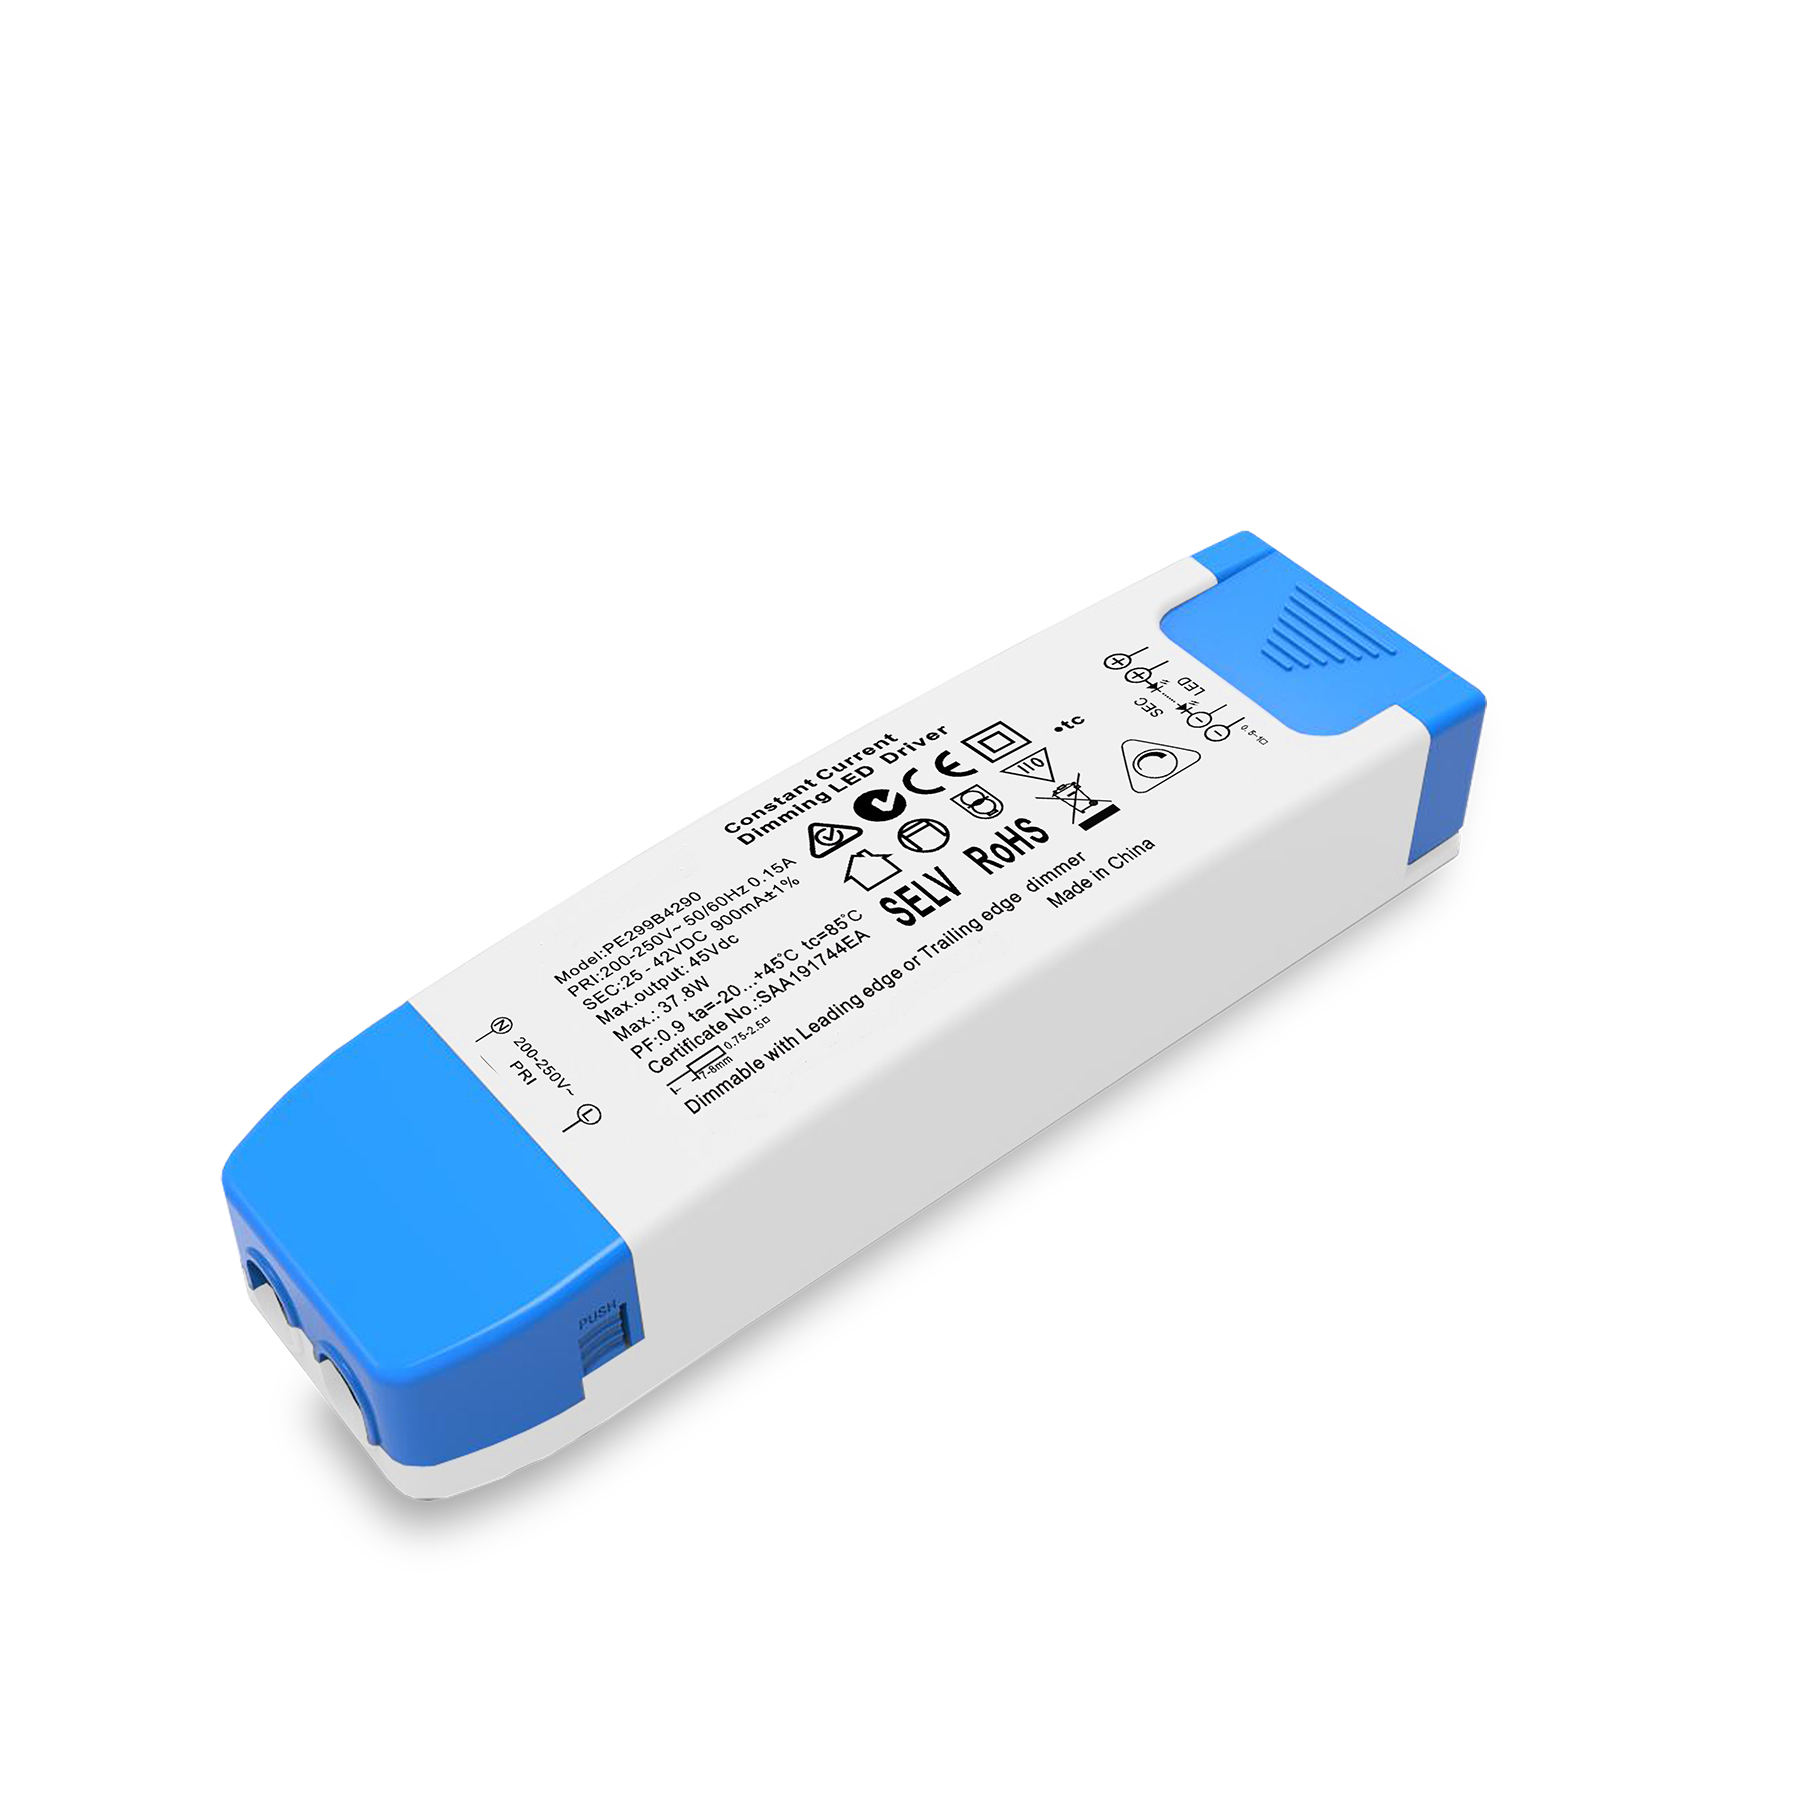 PE296B1435 25-42V 350ma led driver with trailig edge / leadding edge dimming mode